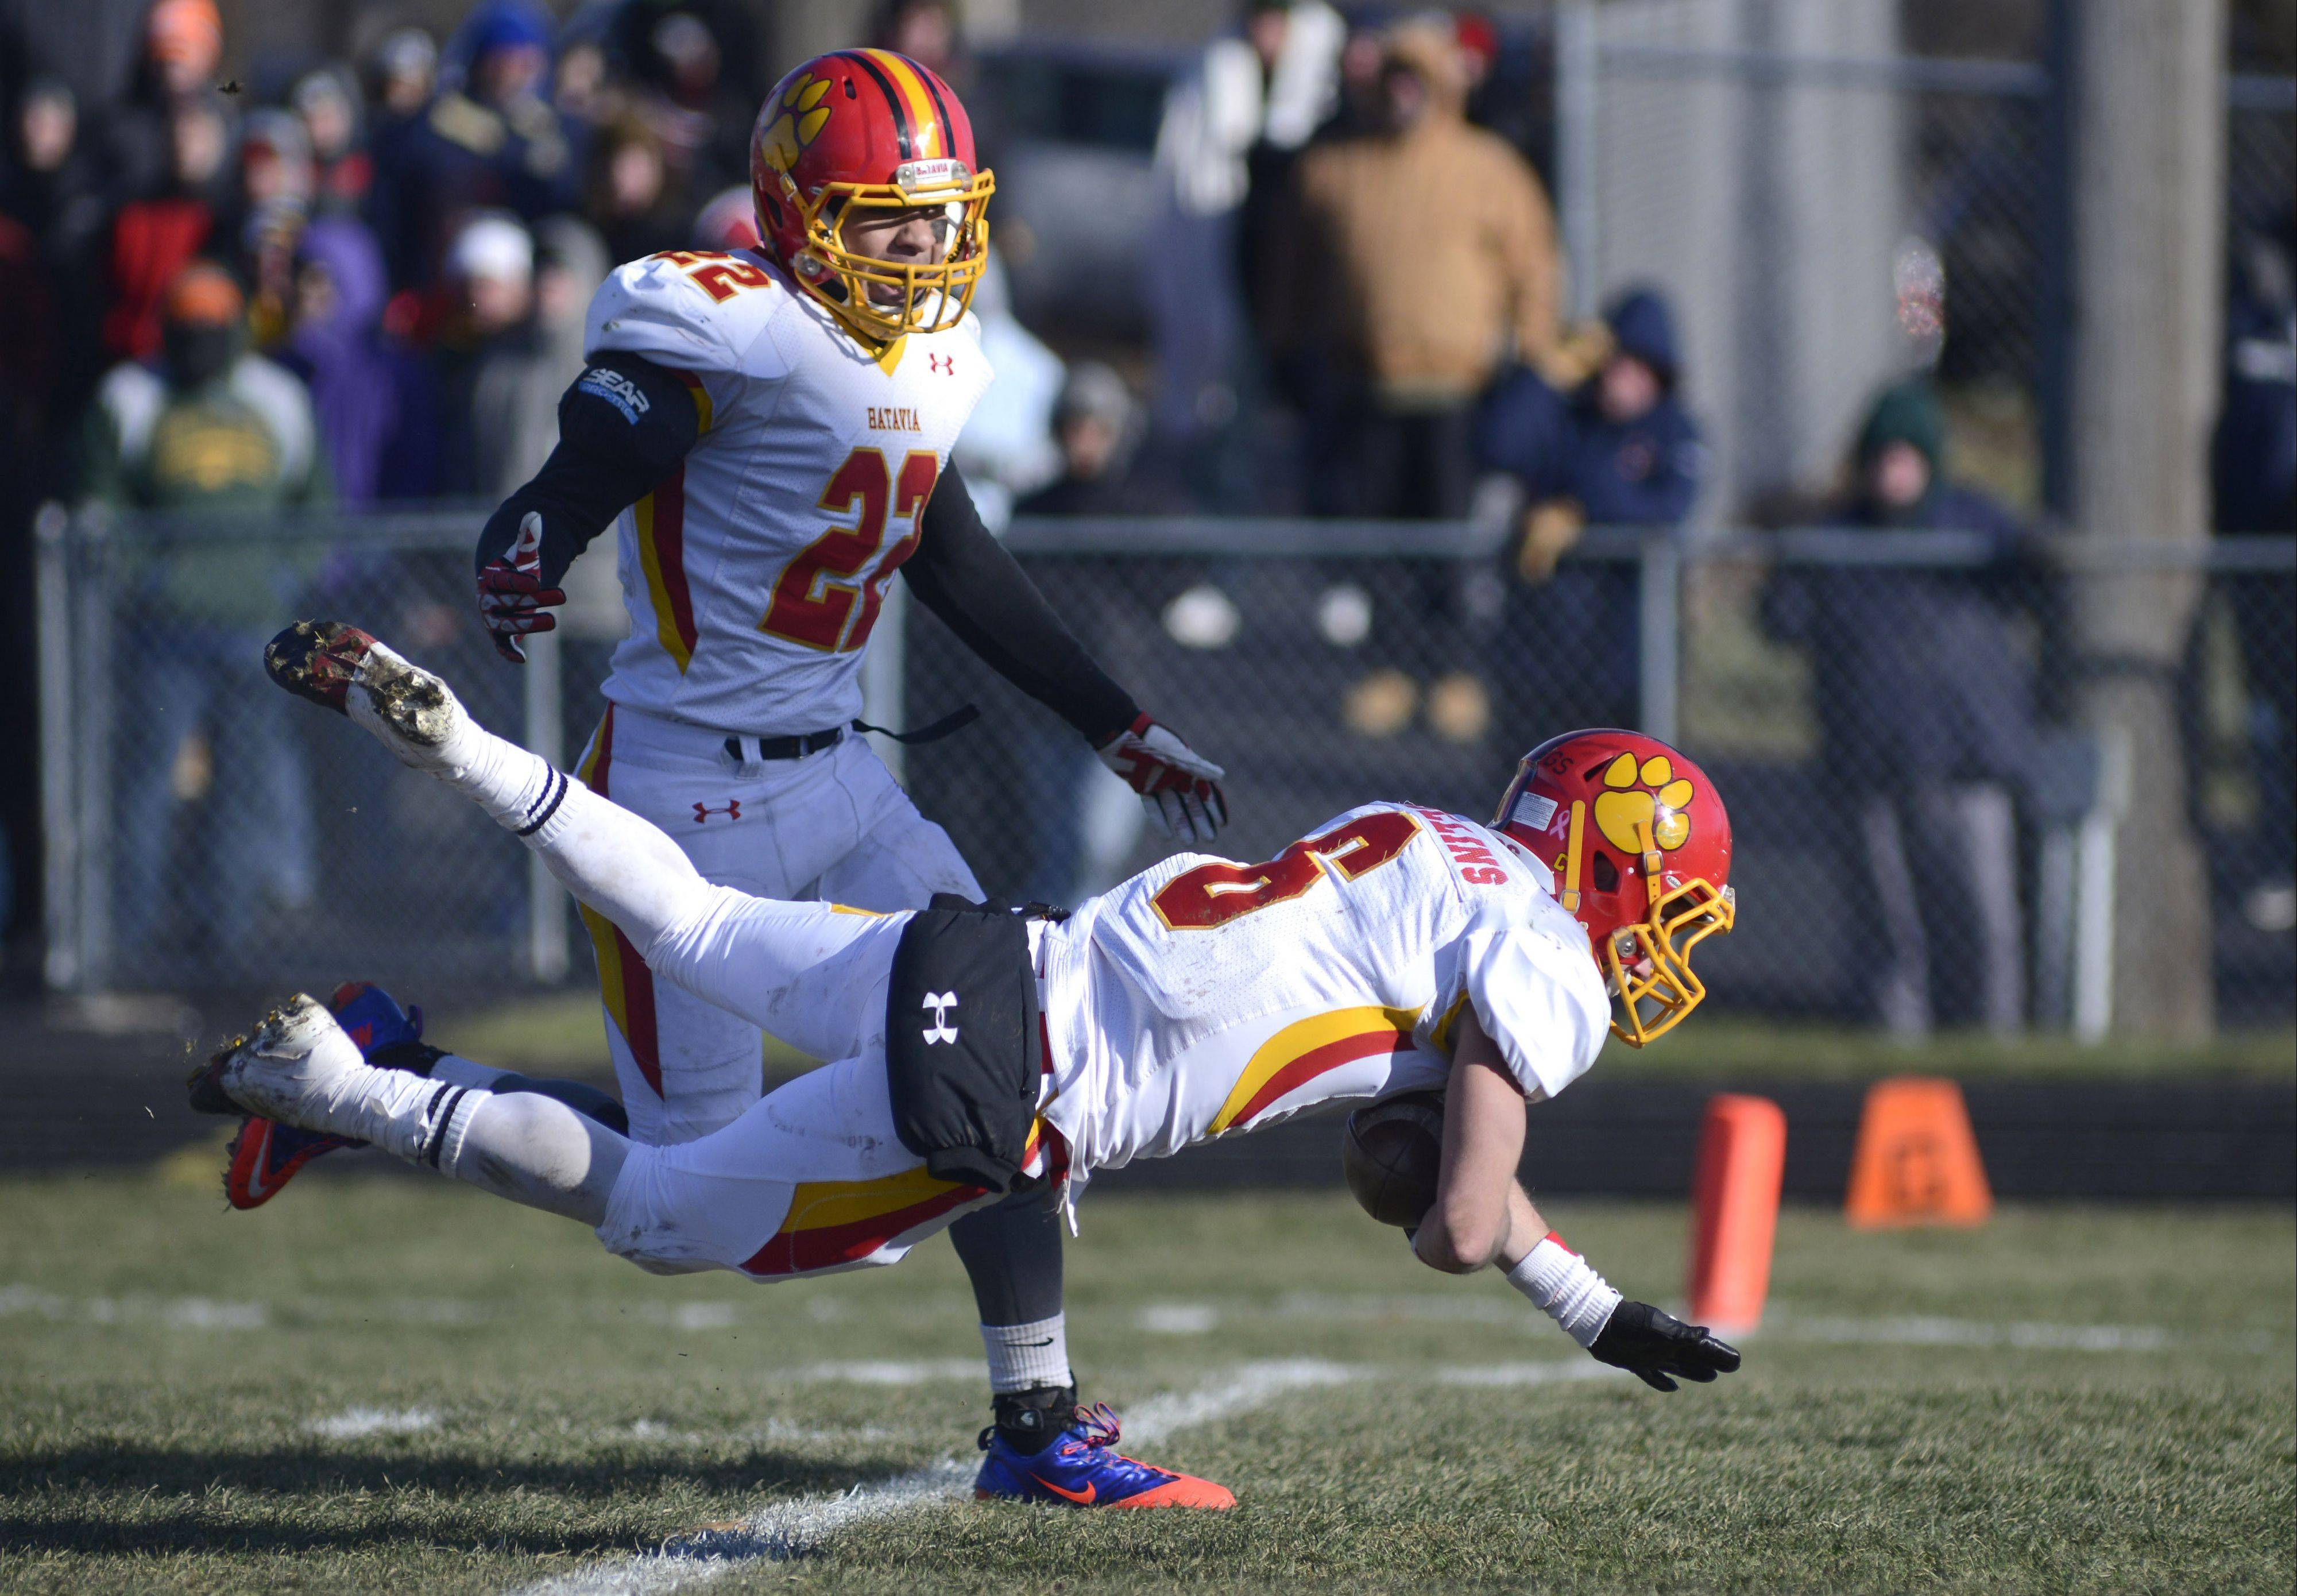 Batavia's Rourke Mullins dives over the goal line past teammate Anthony Thielk after intercepting a Rockford Boylan pass and returning it for a touchdown in the second quarter of the Class 6A semifinal win on Saturday in Rockford.